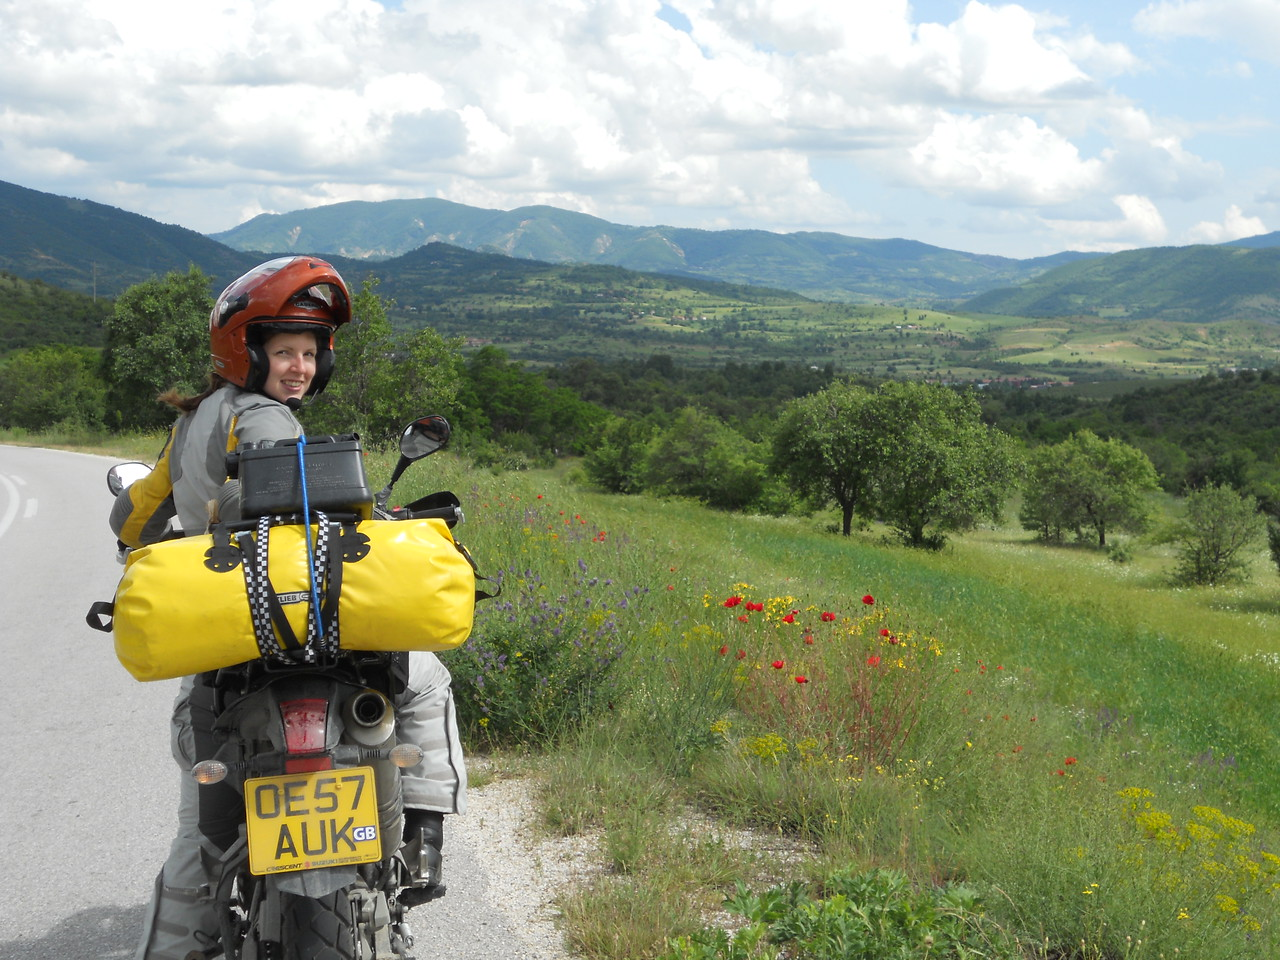 The route takes us through more beautiful countryside, dotted with wild flowers.